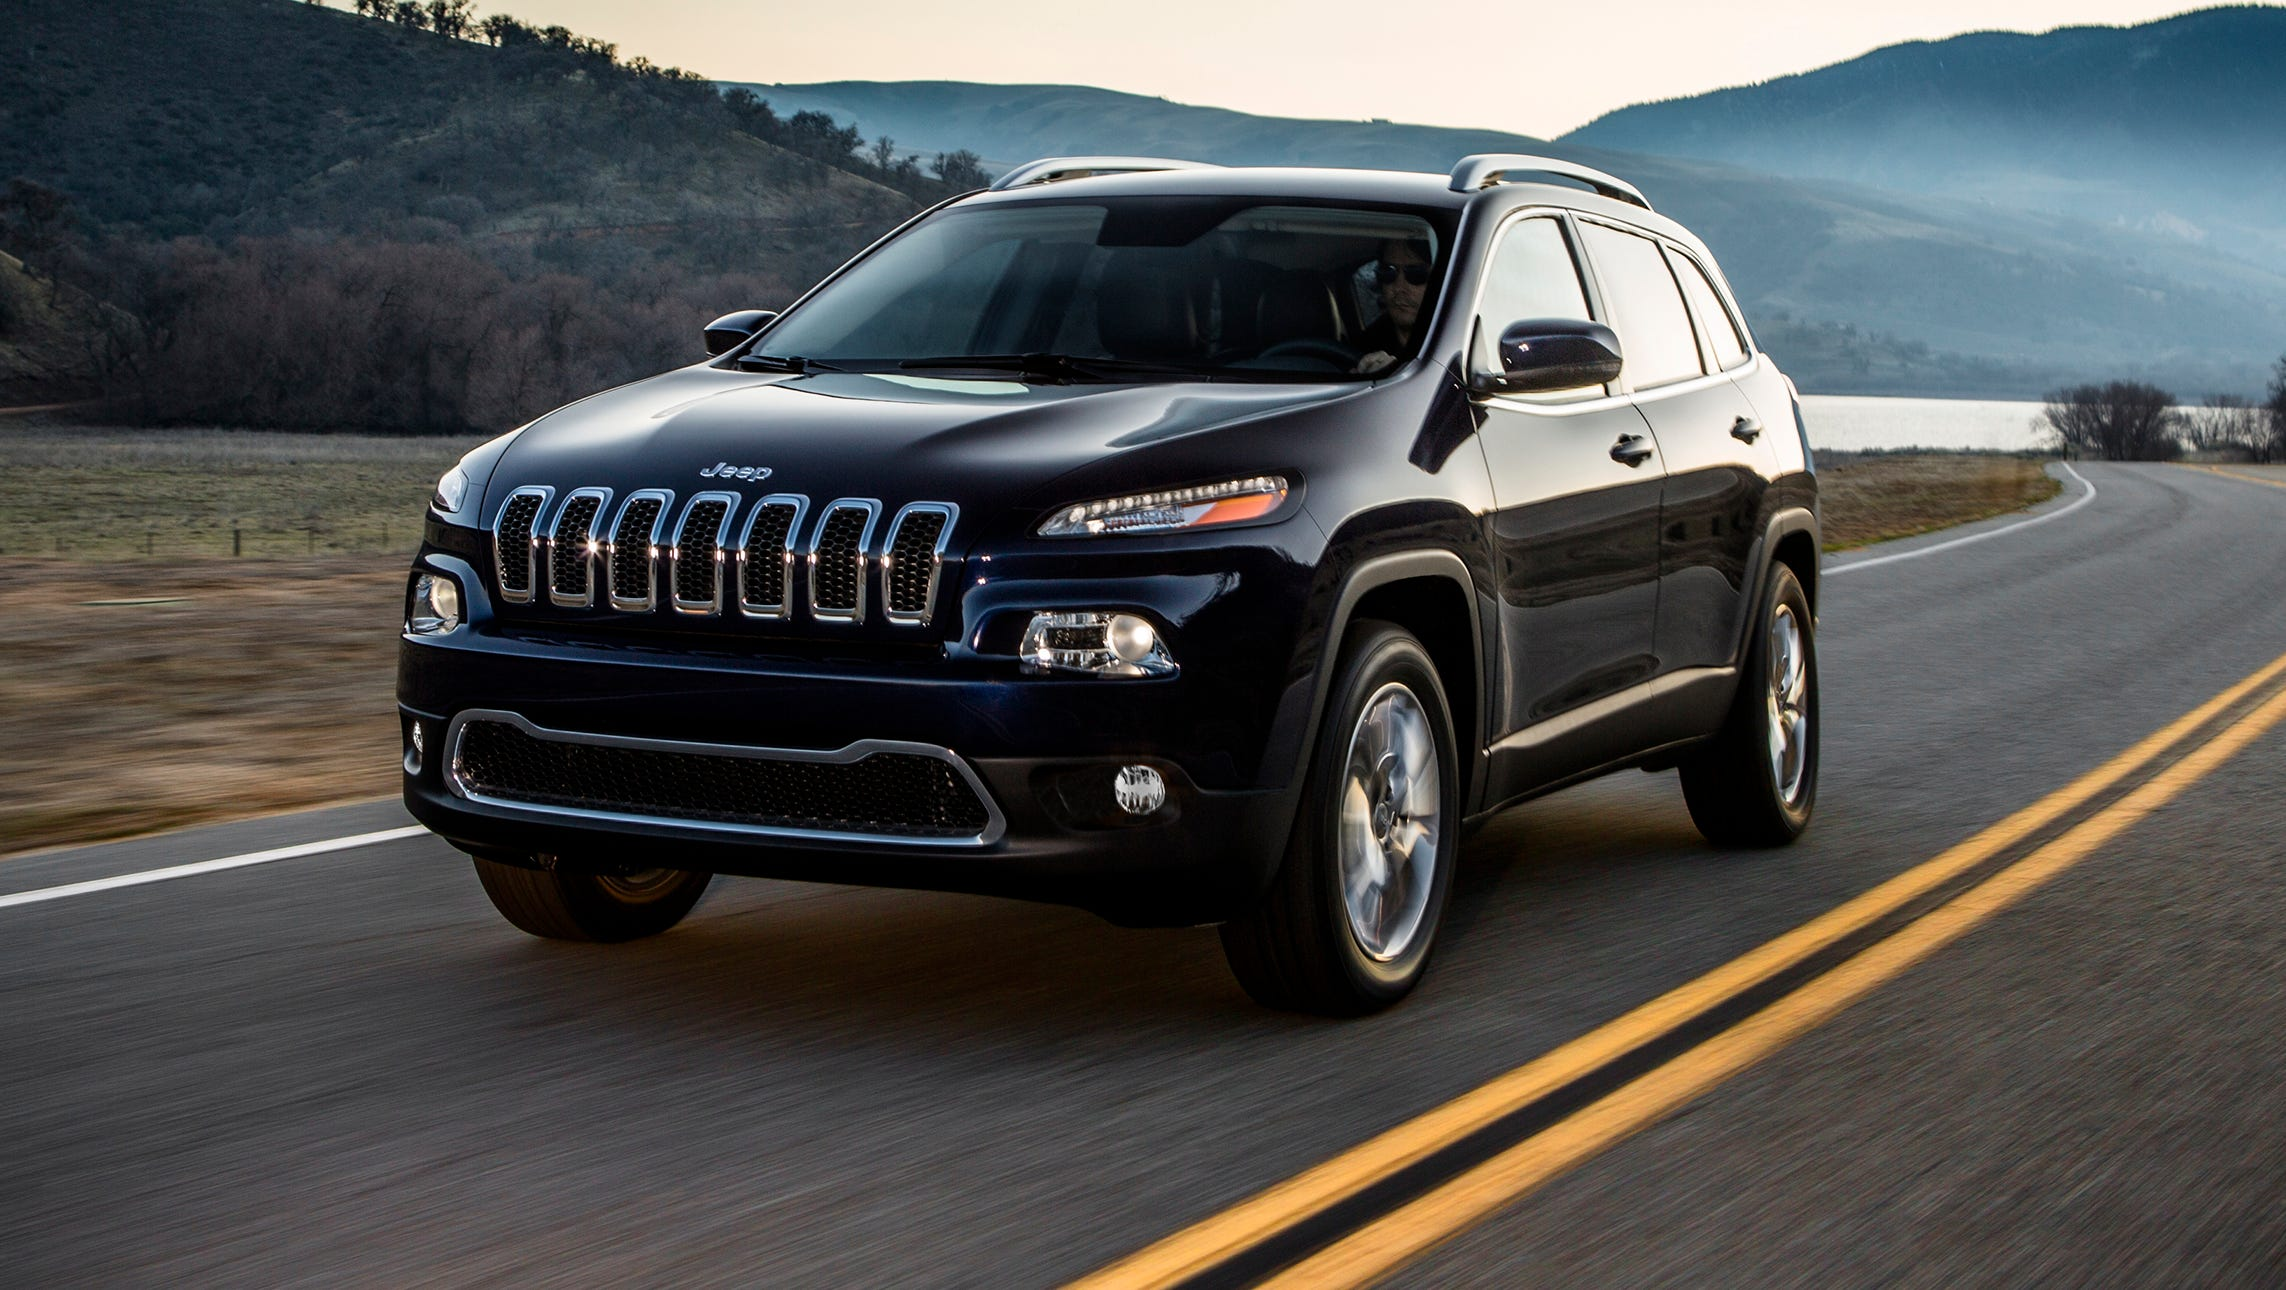 Jeep Liberty Mpg >> New Jeep Cherokee Mpg Ratings Trump Outgoing Liberty